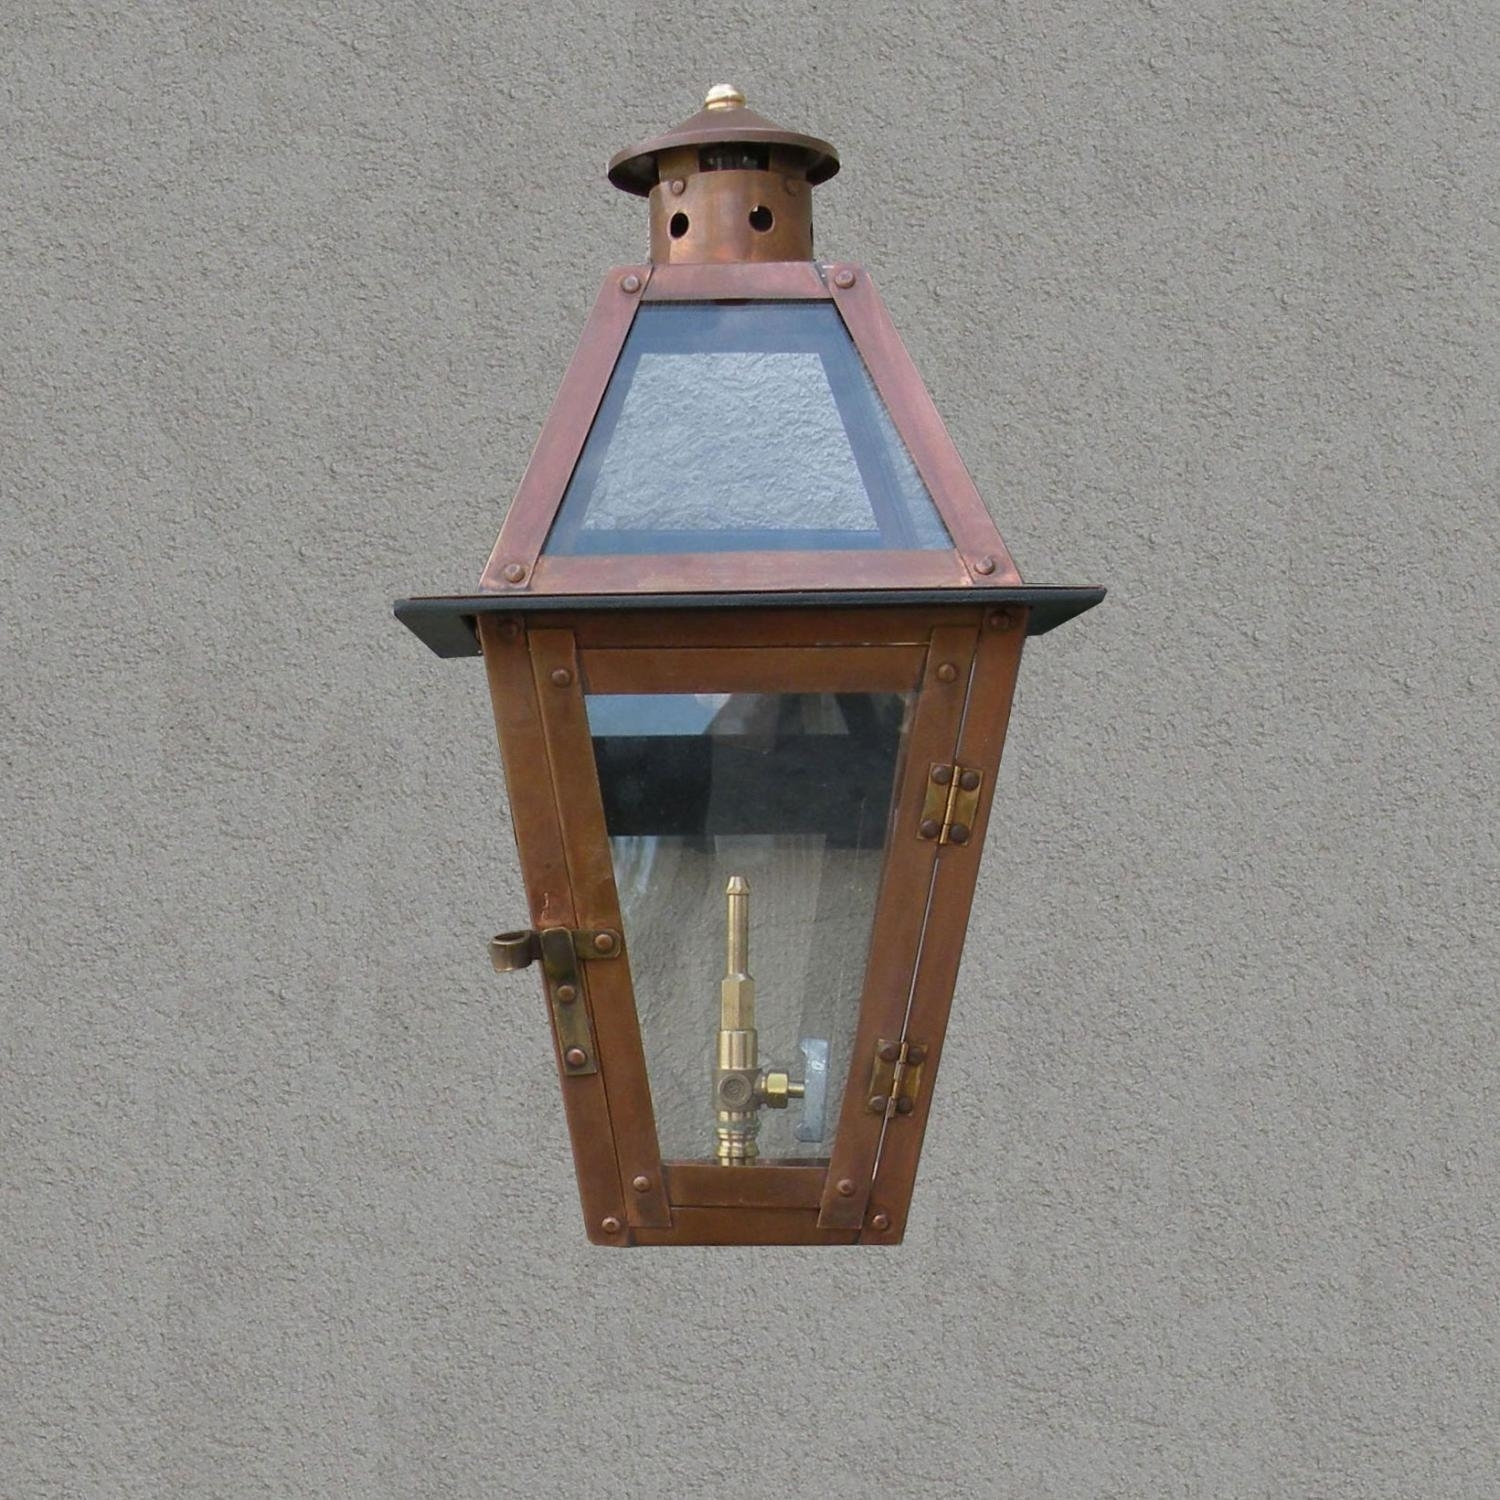 Regency Gl15 Chateau Propane Gas Light With Open Flame Burner And pertaining to Outdoor Propane Lanterns (Image 17 of 20)